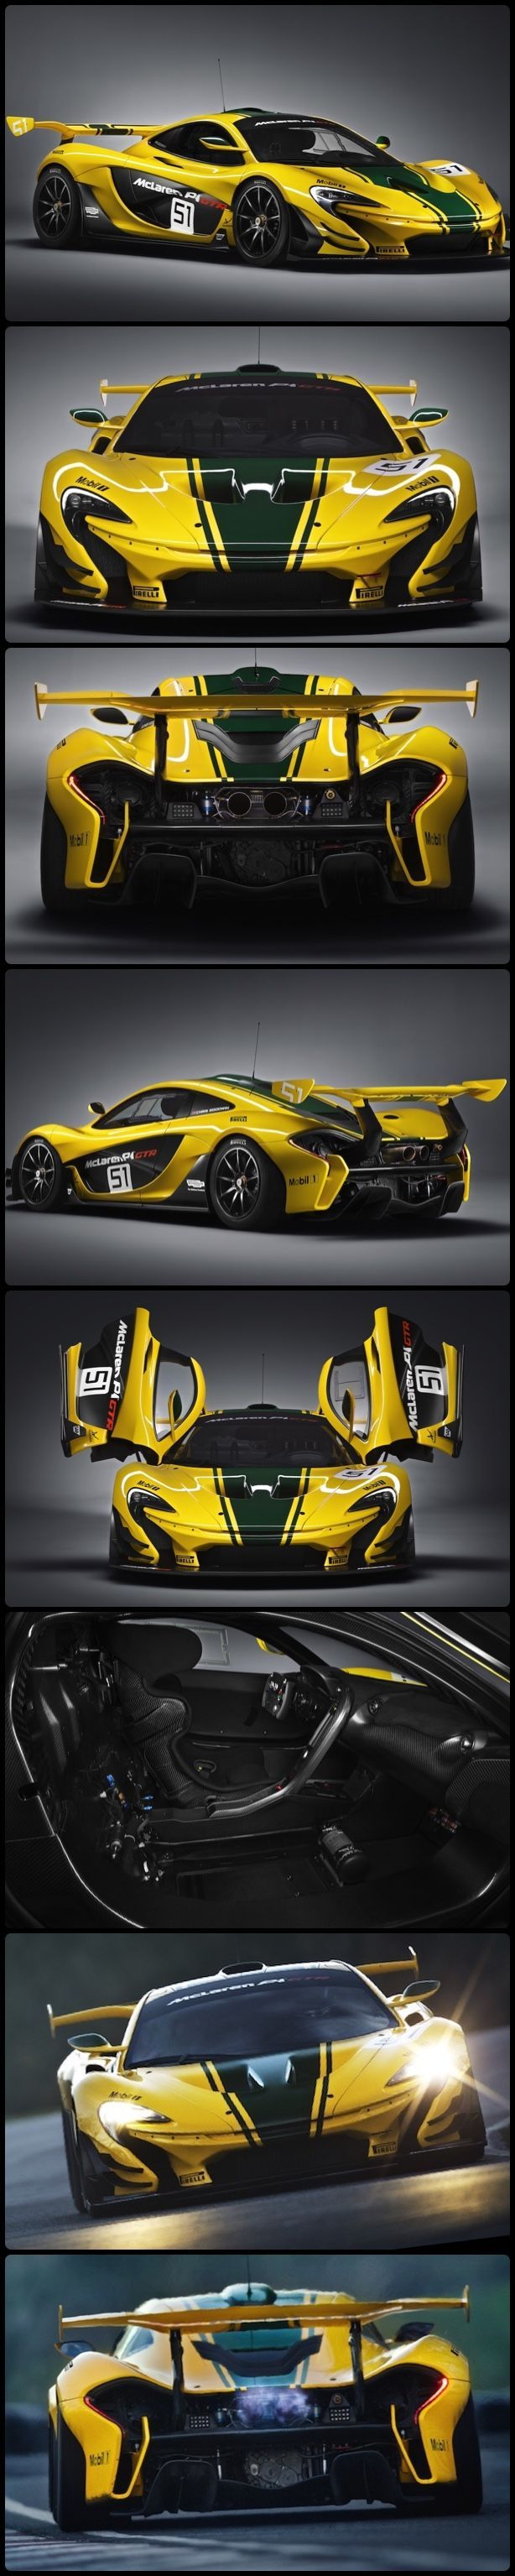 McLaren P1 GTR, a Limited Production. Pay the engineers an extra 15g and you can get it painted however you want